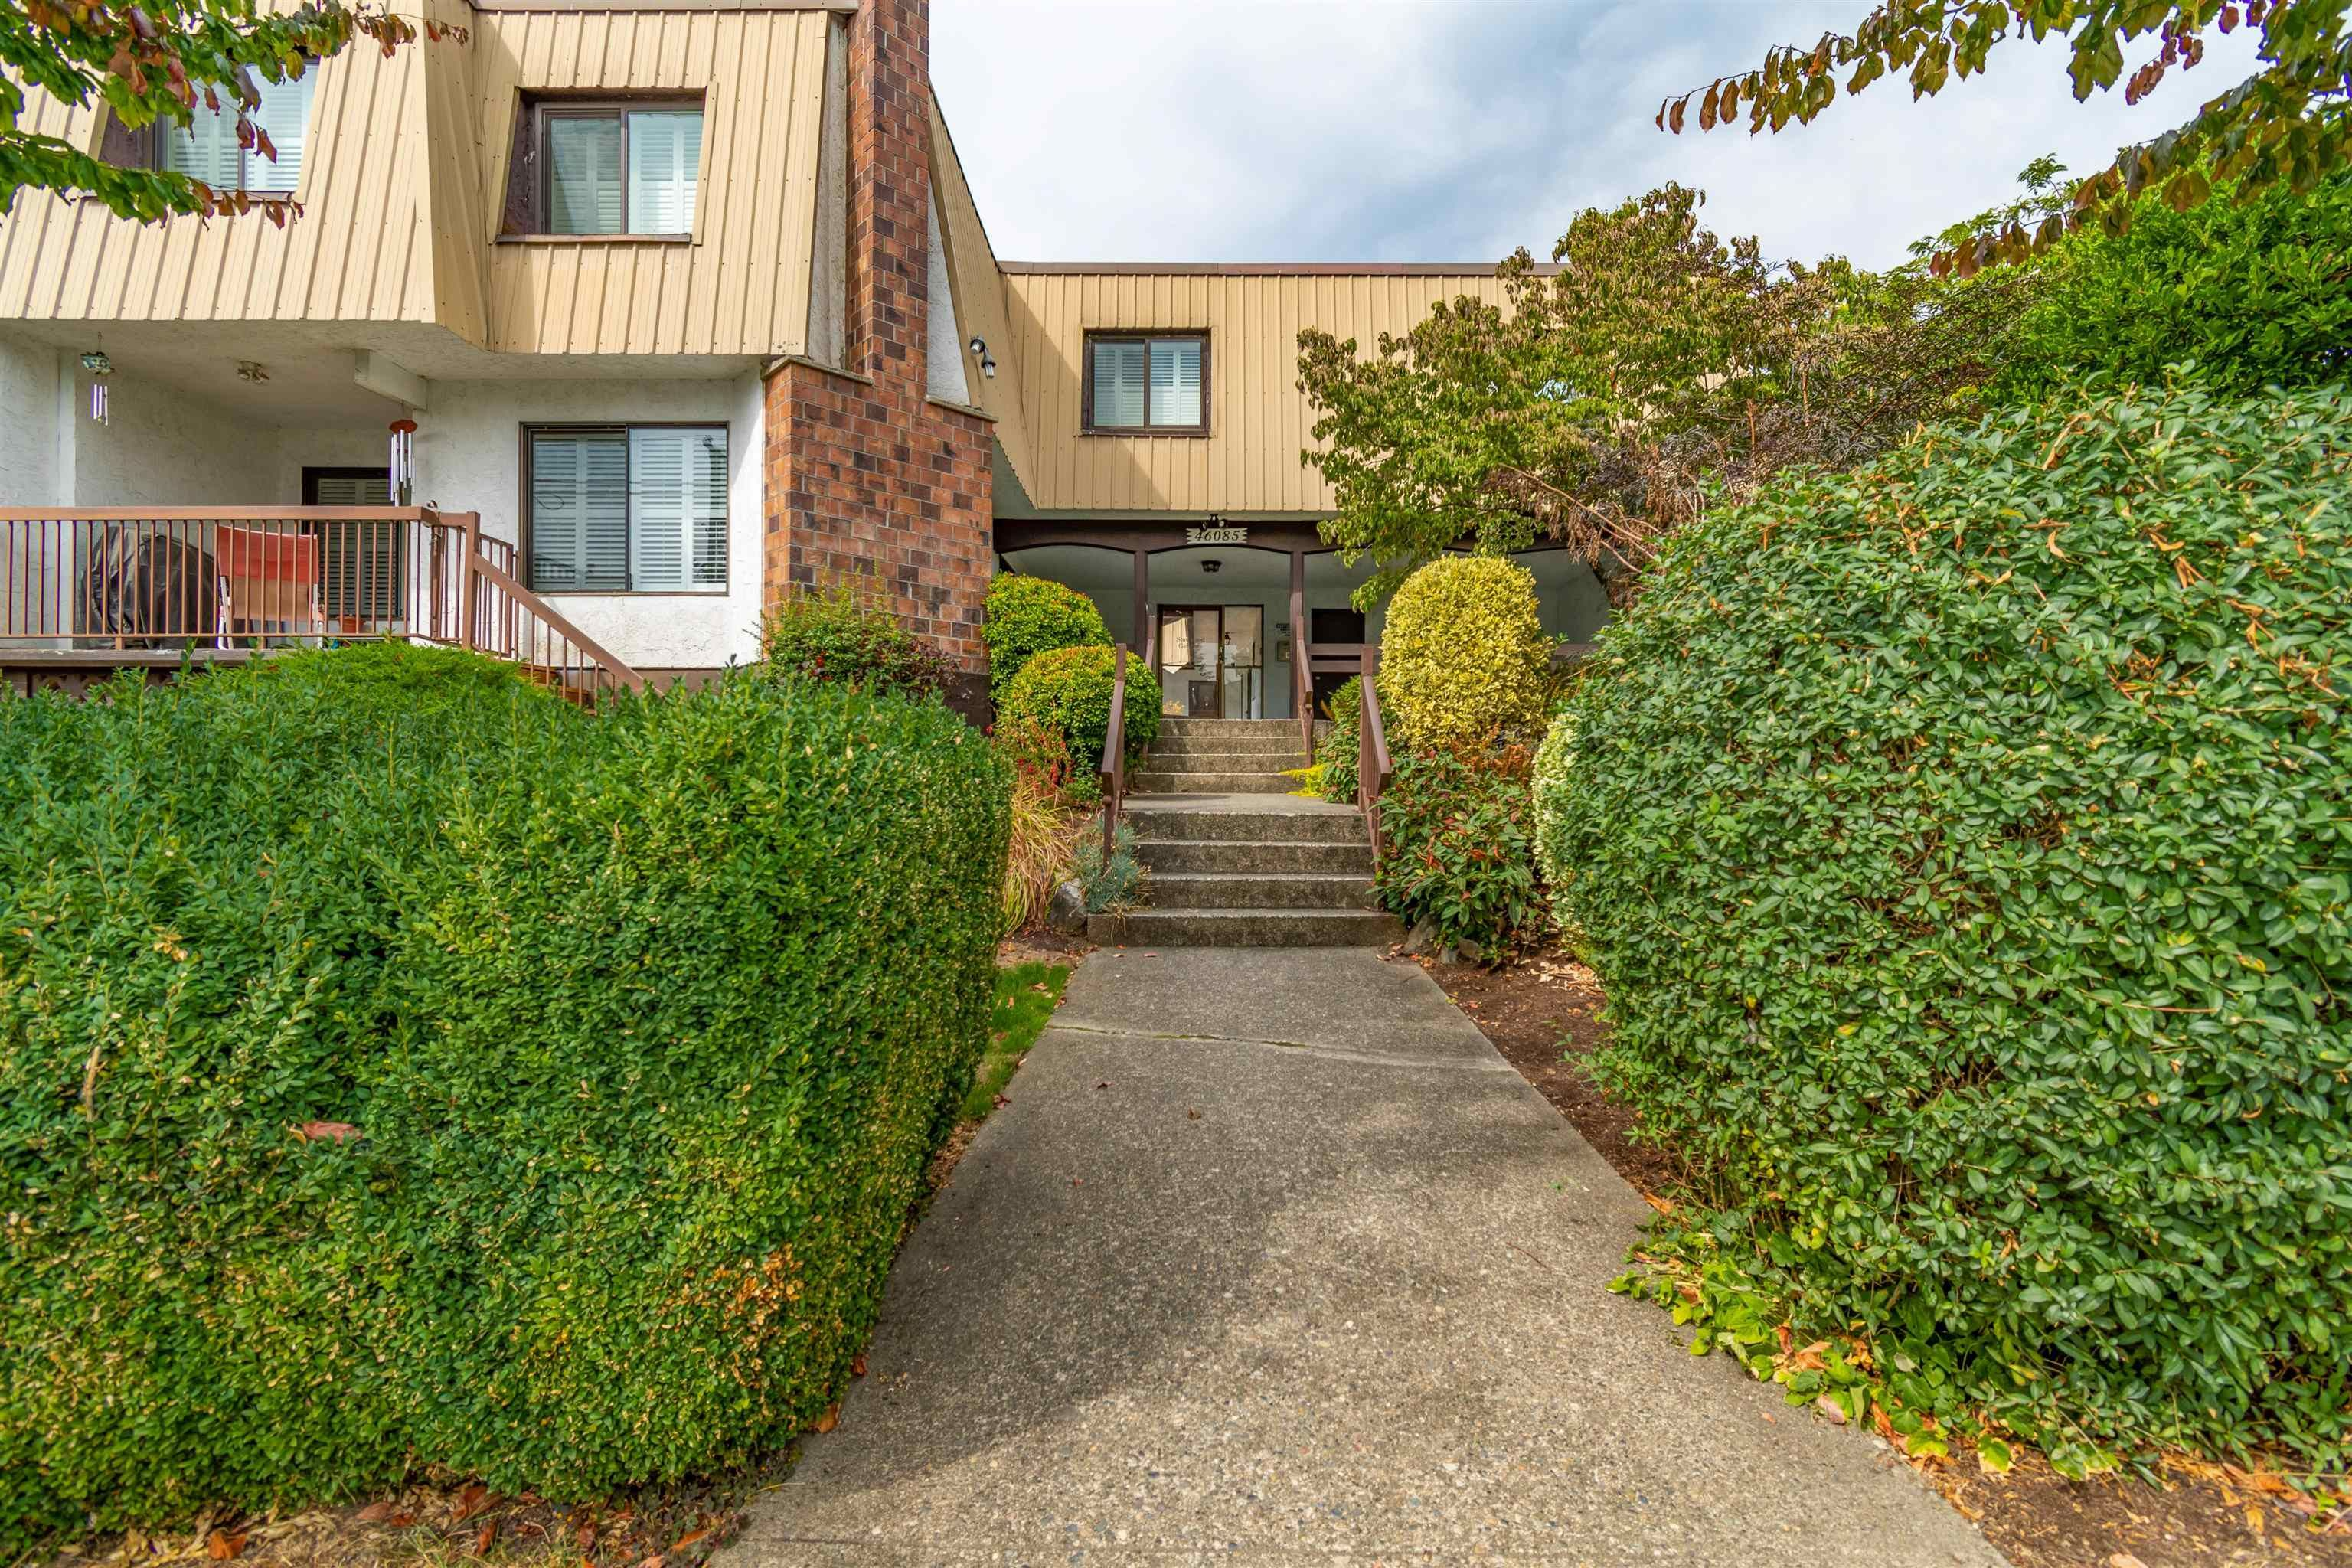 """Main Photo: 9 46085 GORE Avenue in Chilliwack: Chilliwack E Young-Yale Townhouse for sale in """"Sherwood Gardens"""" : MLS®# R2621838"""